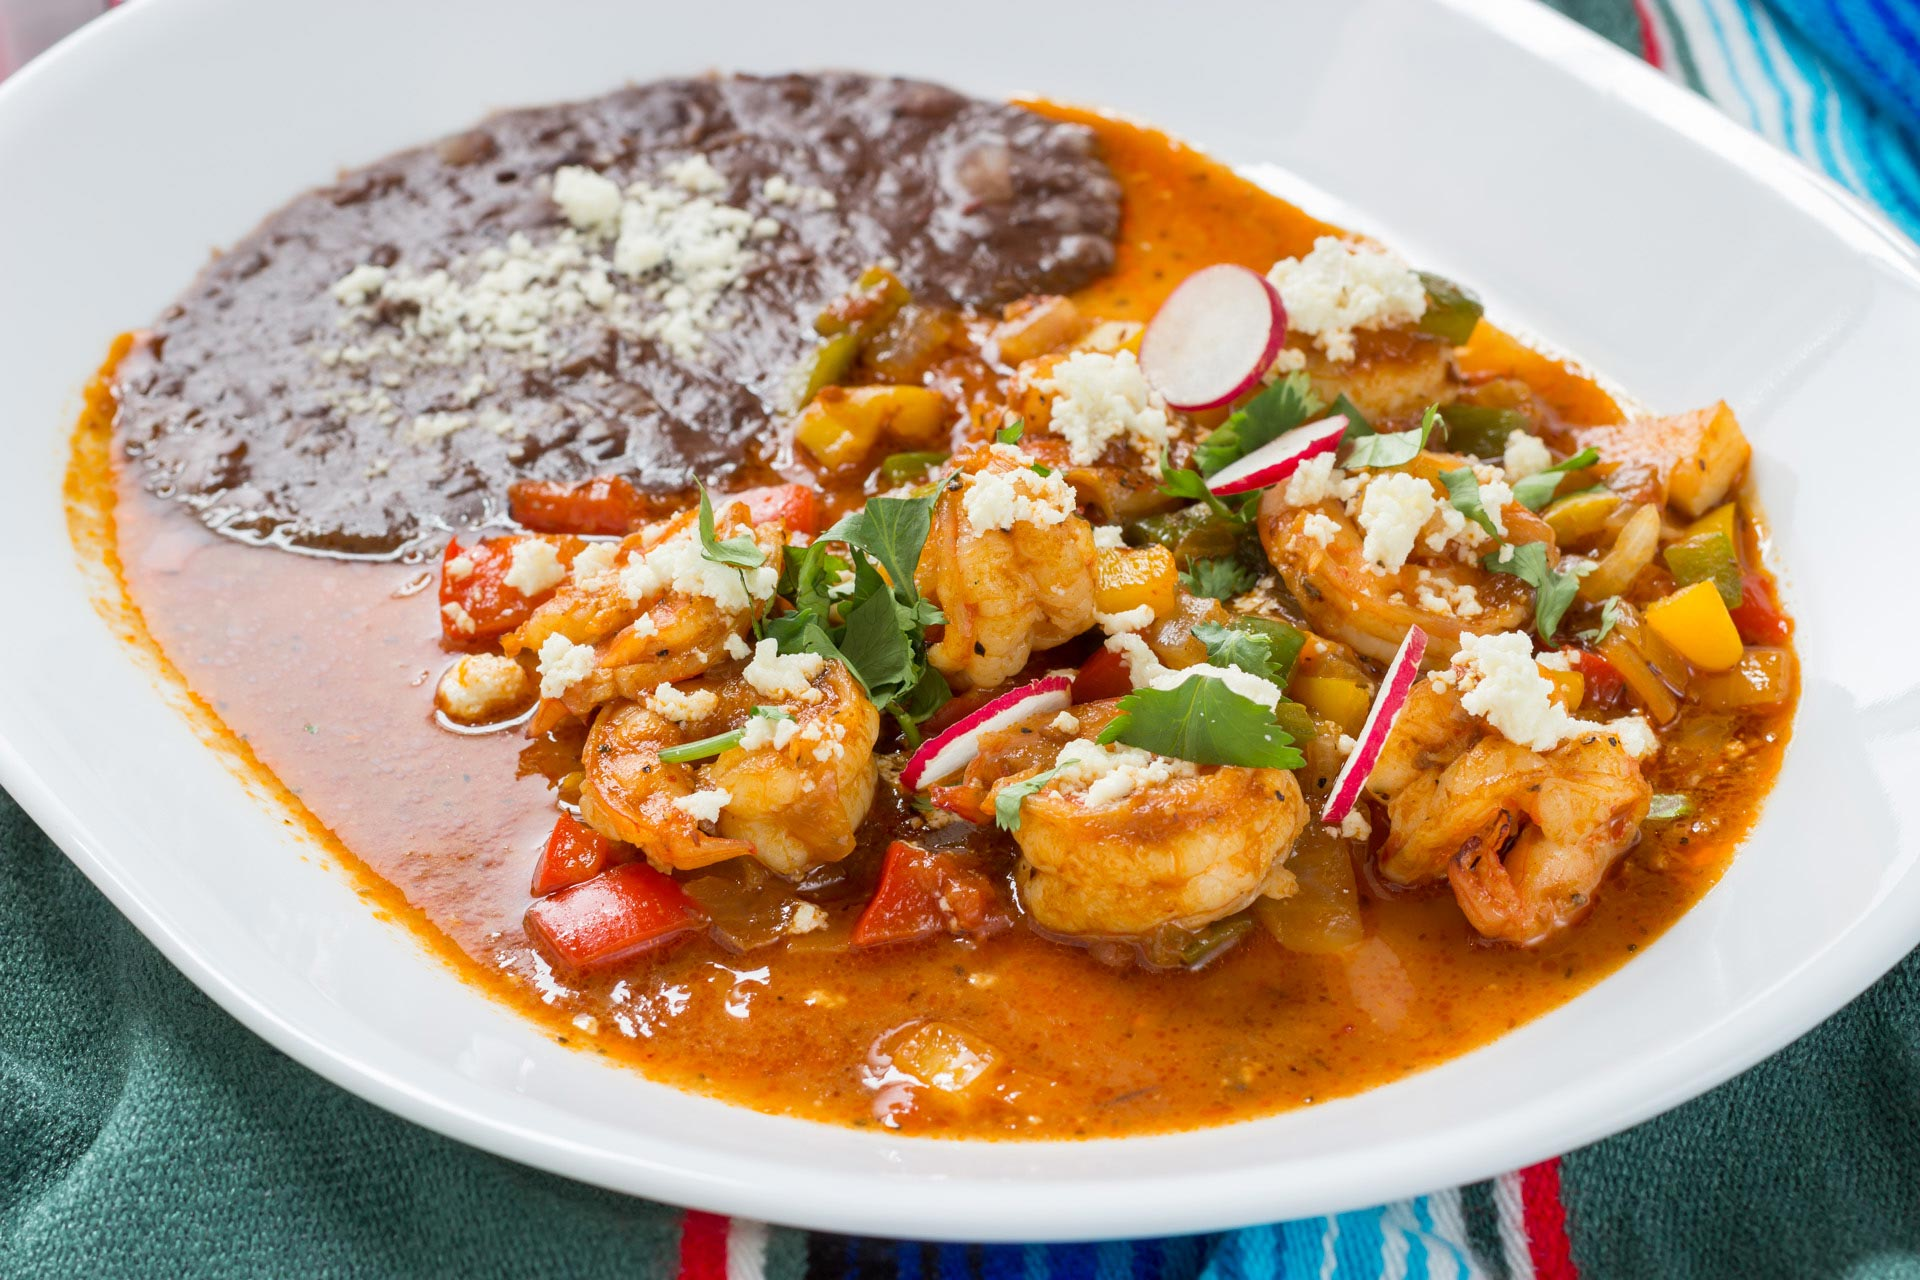 Image gallery oaxaca food for About mexican cuisine